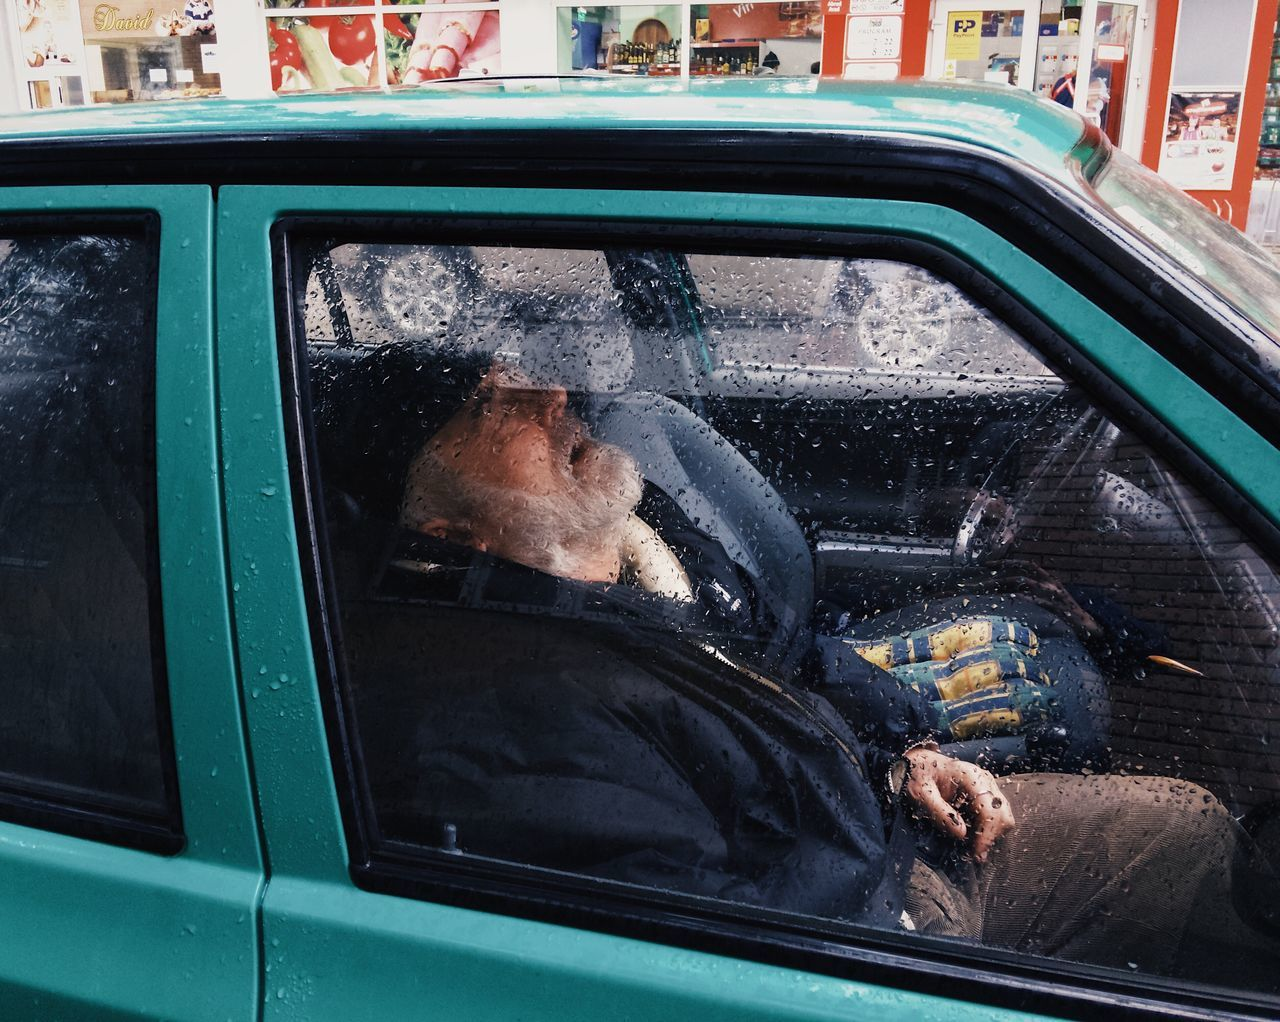 Nap time... Rainy Transportation Mode Of Transport Mature Adult Lifestyles Senior Men Steering Wheel Moments Of Life City Street My Favorite Photo Made In Romania Fresh On Eyeem  Leisure Activity Street Life VSCO Details Of My Life City Life Sleeping Sleep Time Nap Time Relax Time  Citylife Street Mobile City